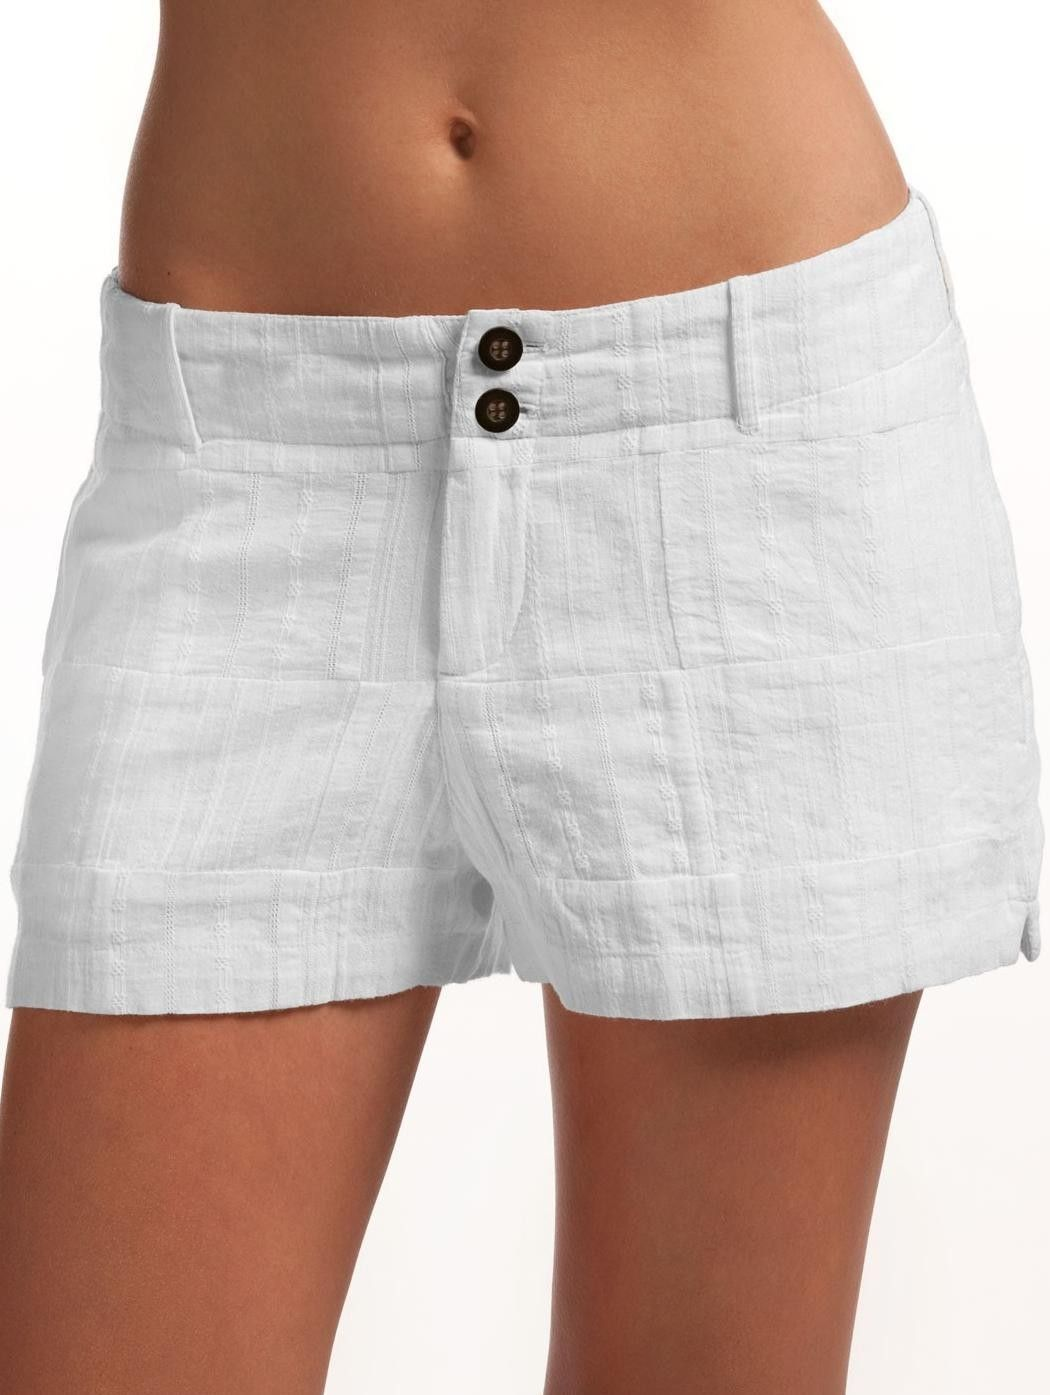 White Shorts For Women - The Else